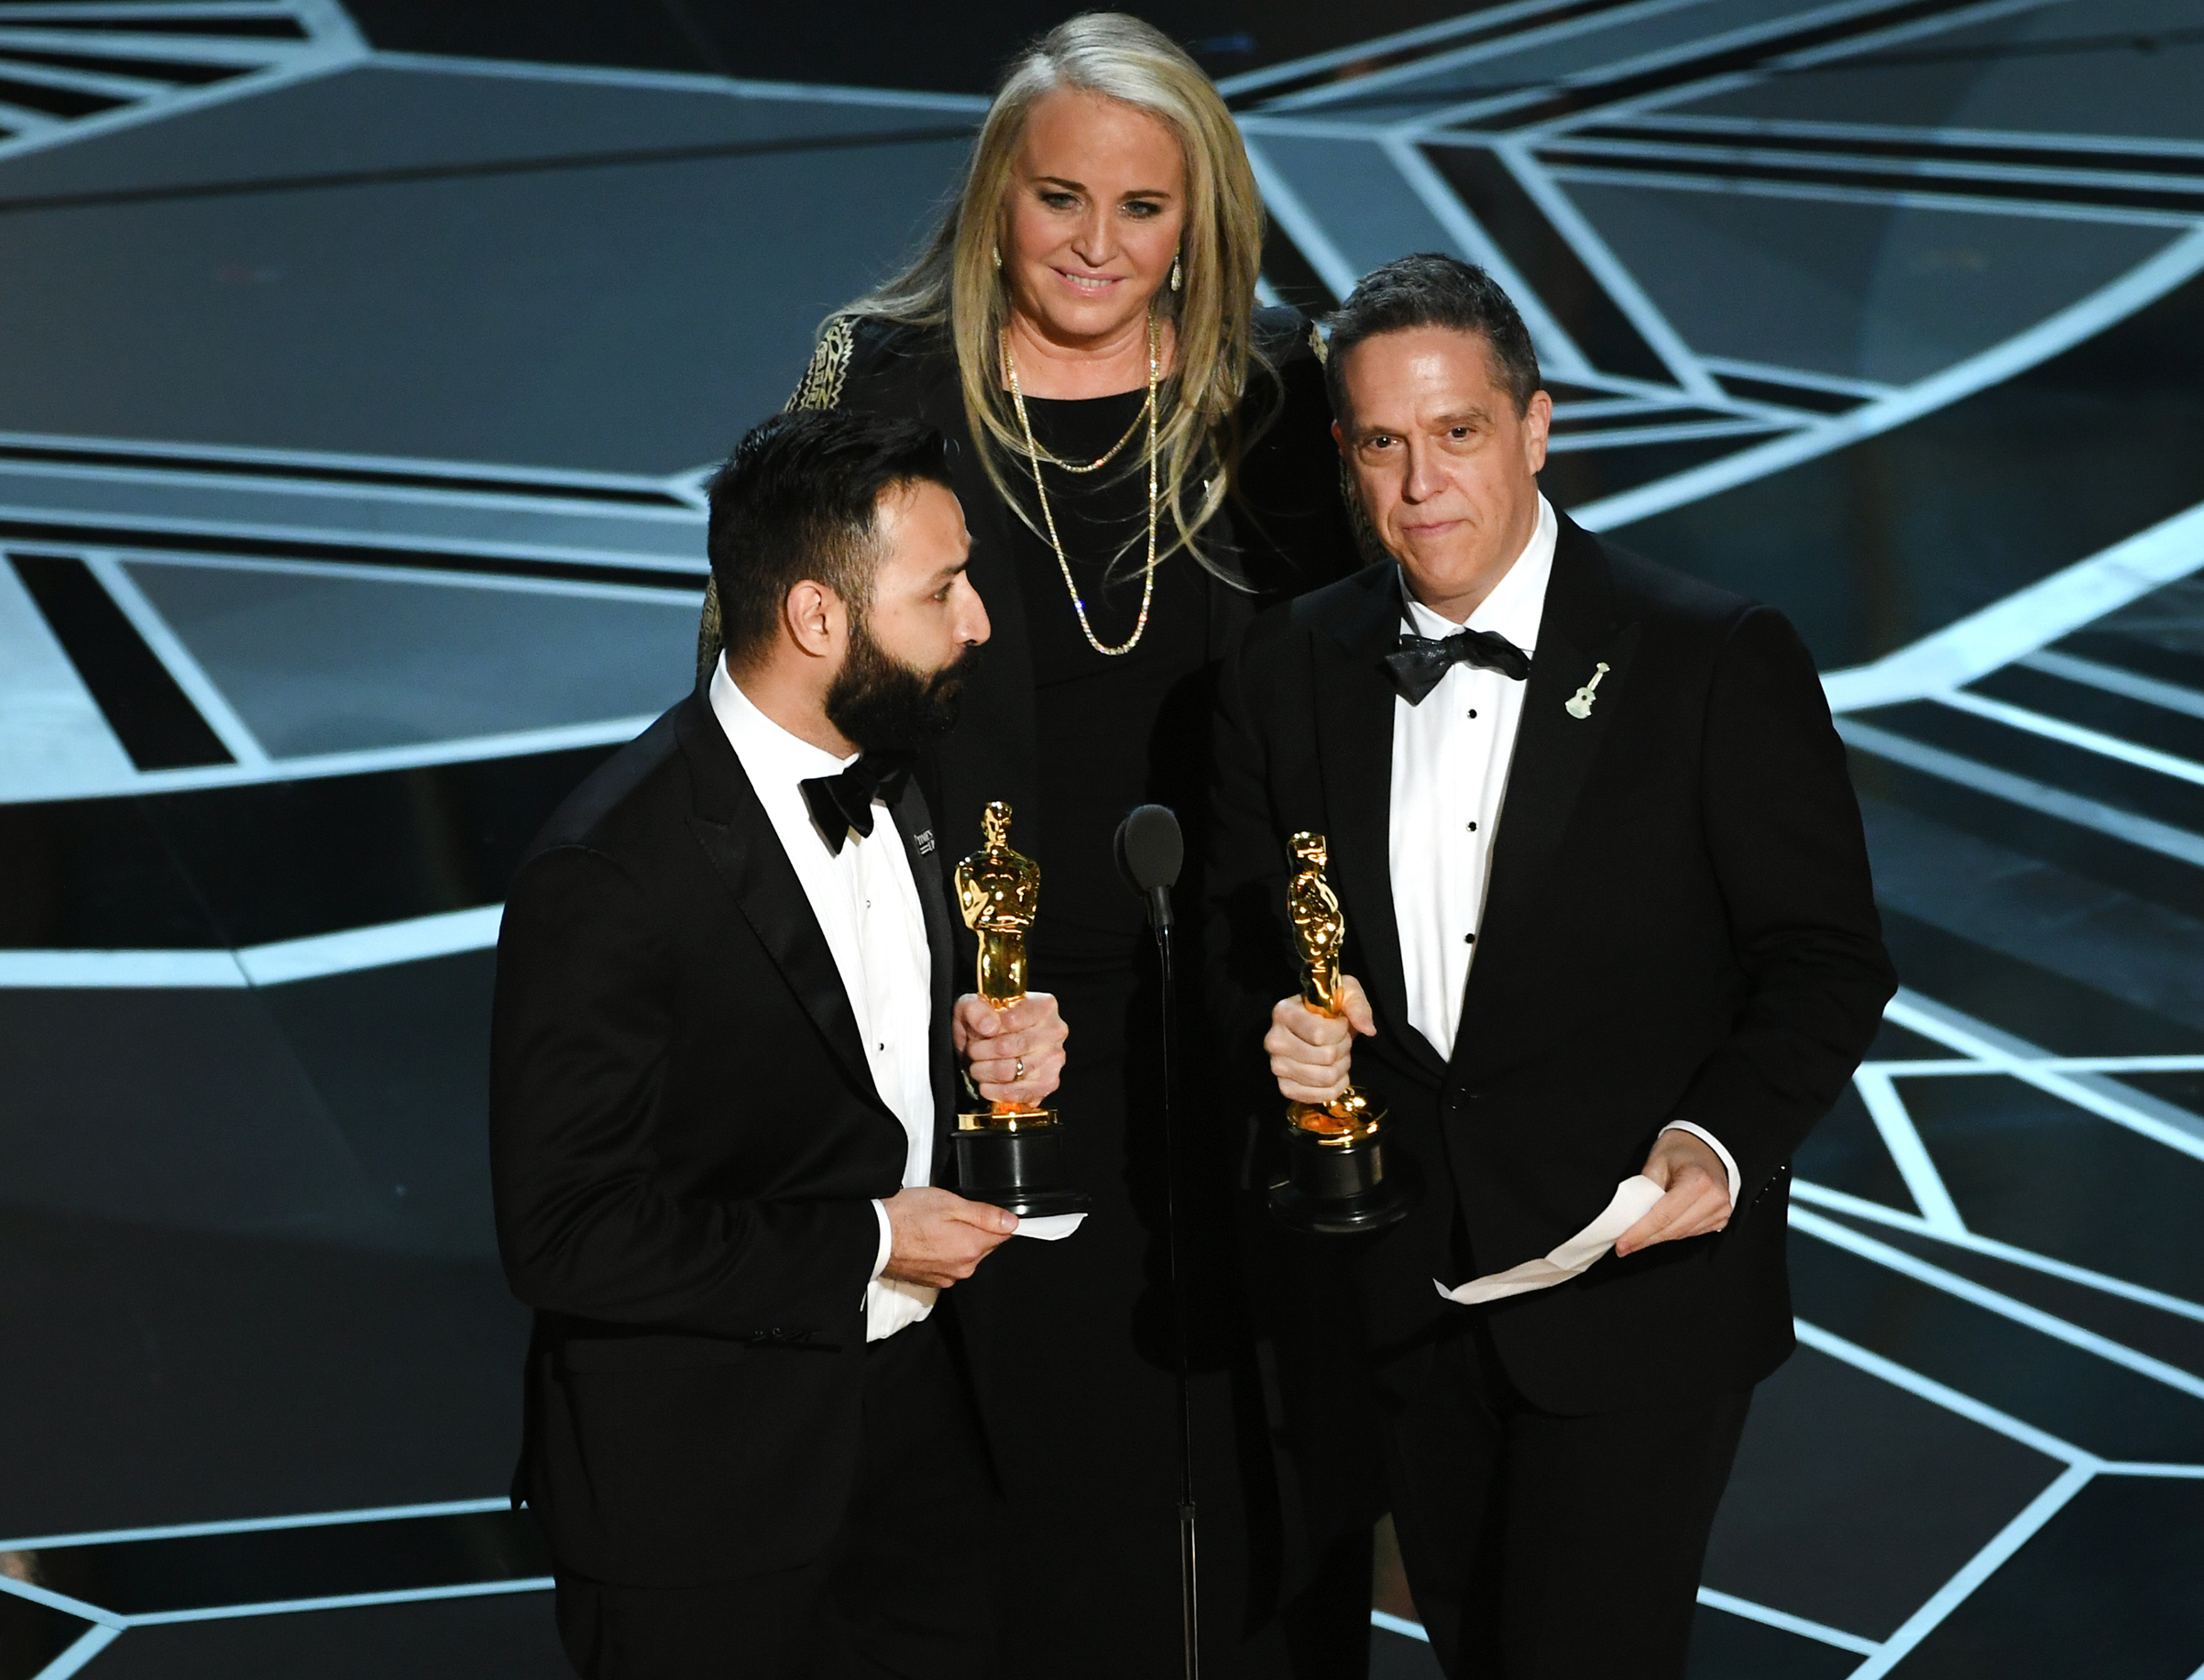 Filmmakers Adrian Molina, Darla K. Anderson and Lee Unkrich accept Best Animated Feature Film for 'Coco' onstage during the 90th Annual Academy Awards at the Dolby Theatre at Hollywood & Highland Center on March 4, 2018 in Hollywood.